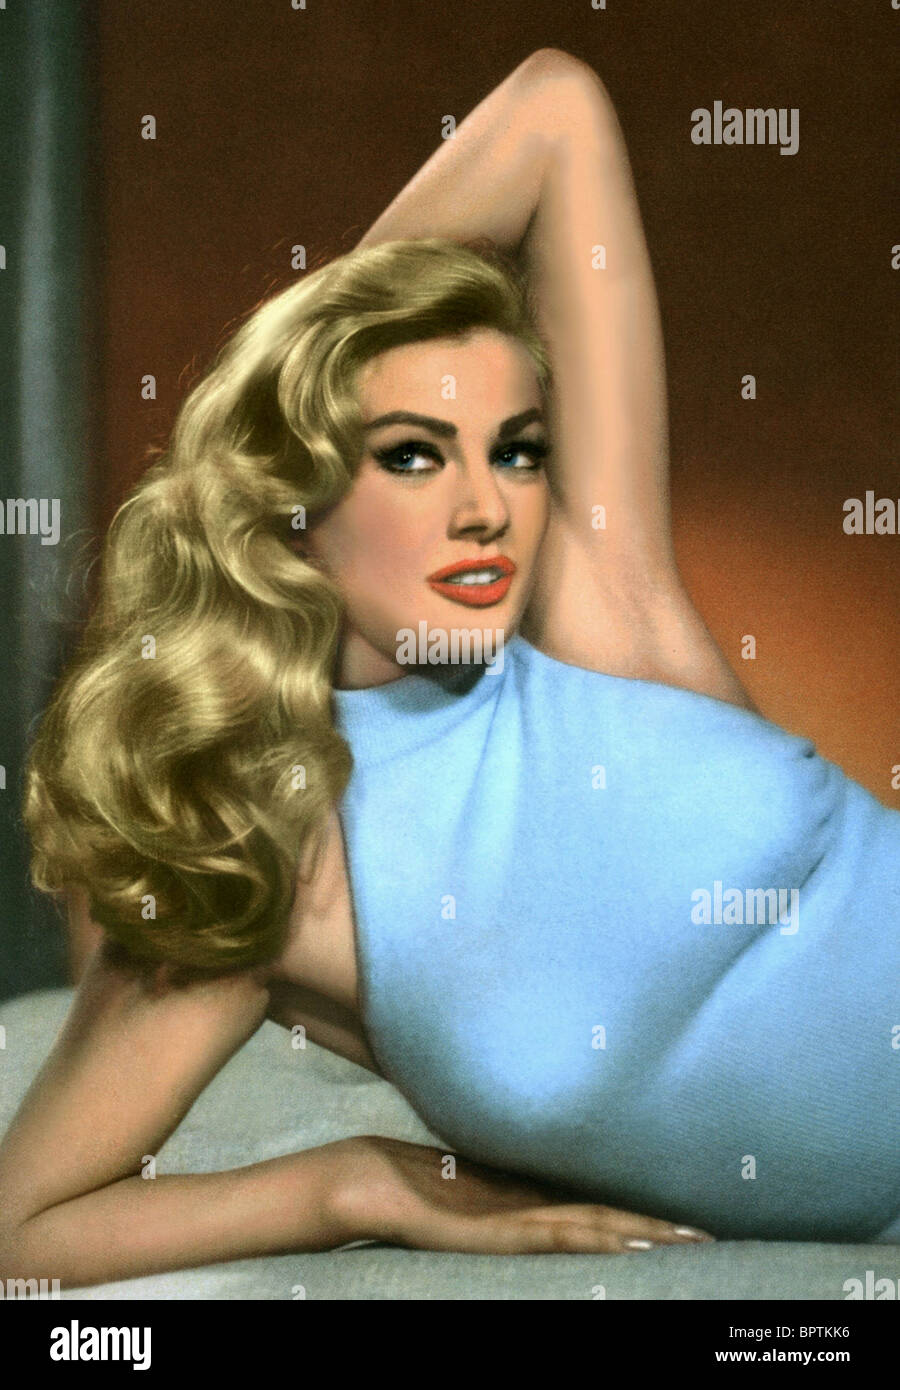 ANITA EKBERG ACTRESS (1956) - Stock Image